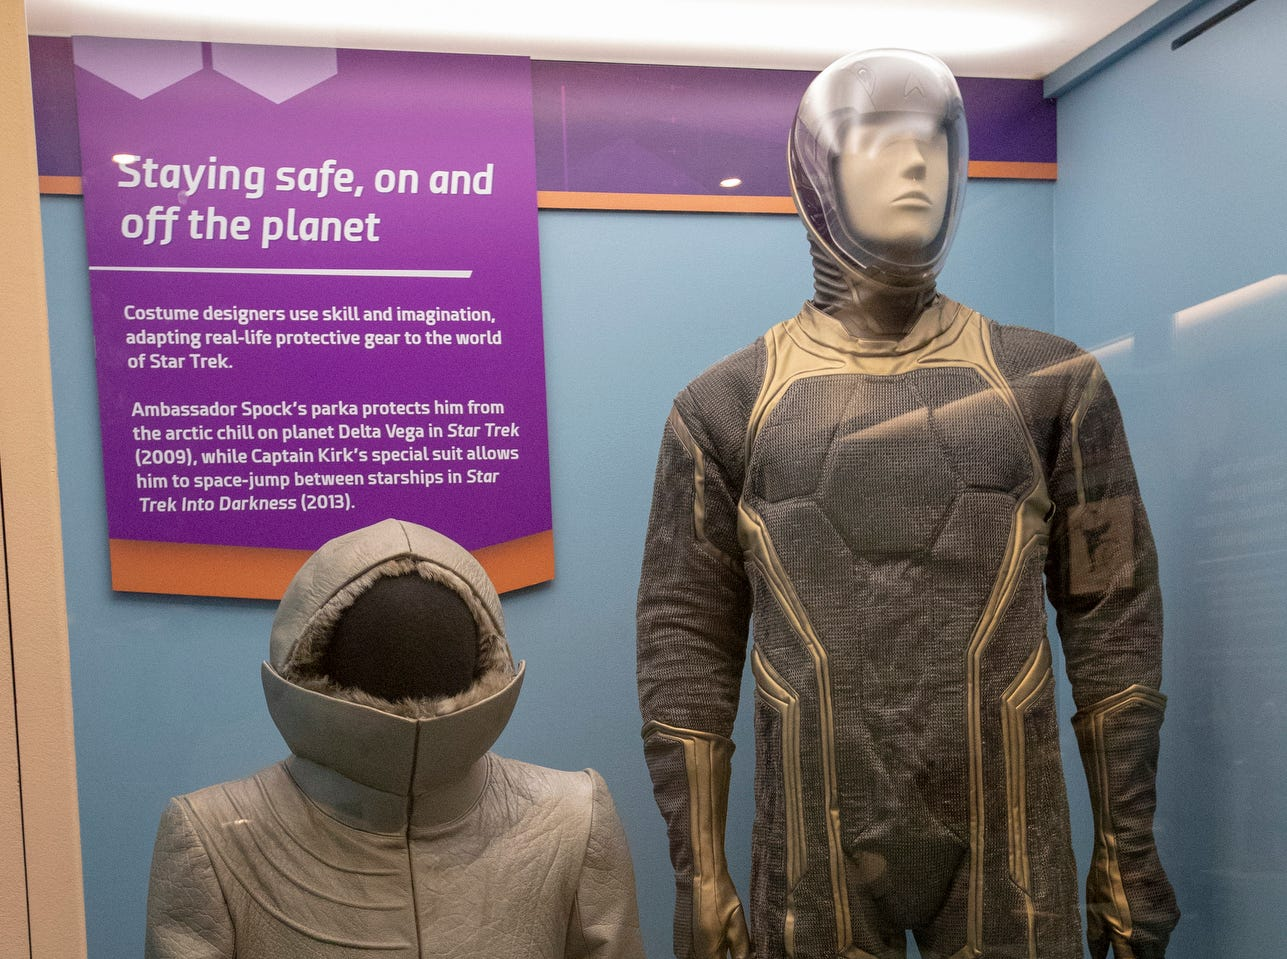 """Cold-weather gear and a spacesuit from the Star Trek universe are seen at The Children's Museum of Indianapolis, Wednesday, Jan. 23, 2019. The """"Star Trek: Exploring New Worlds"""" exhibit is made up of set pieces, ship models and outfits used during various Star Trek shows and movies and is on display at the museum from Feb. 2 through April 7, 2019."""